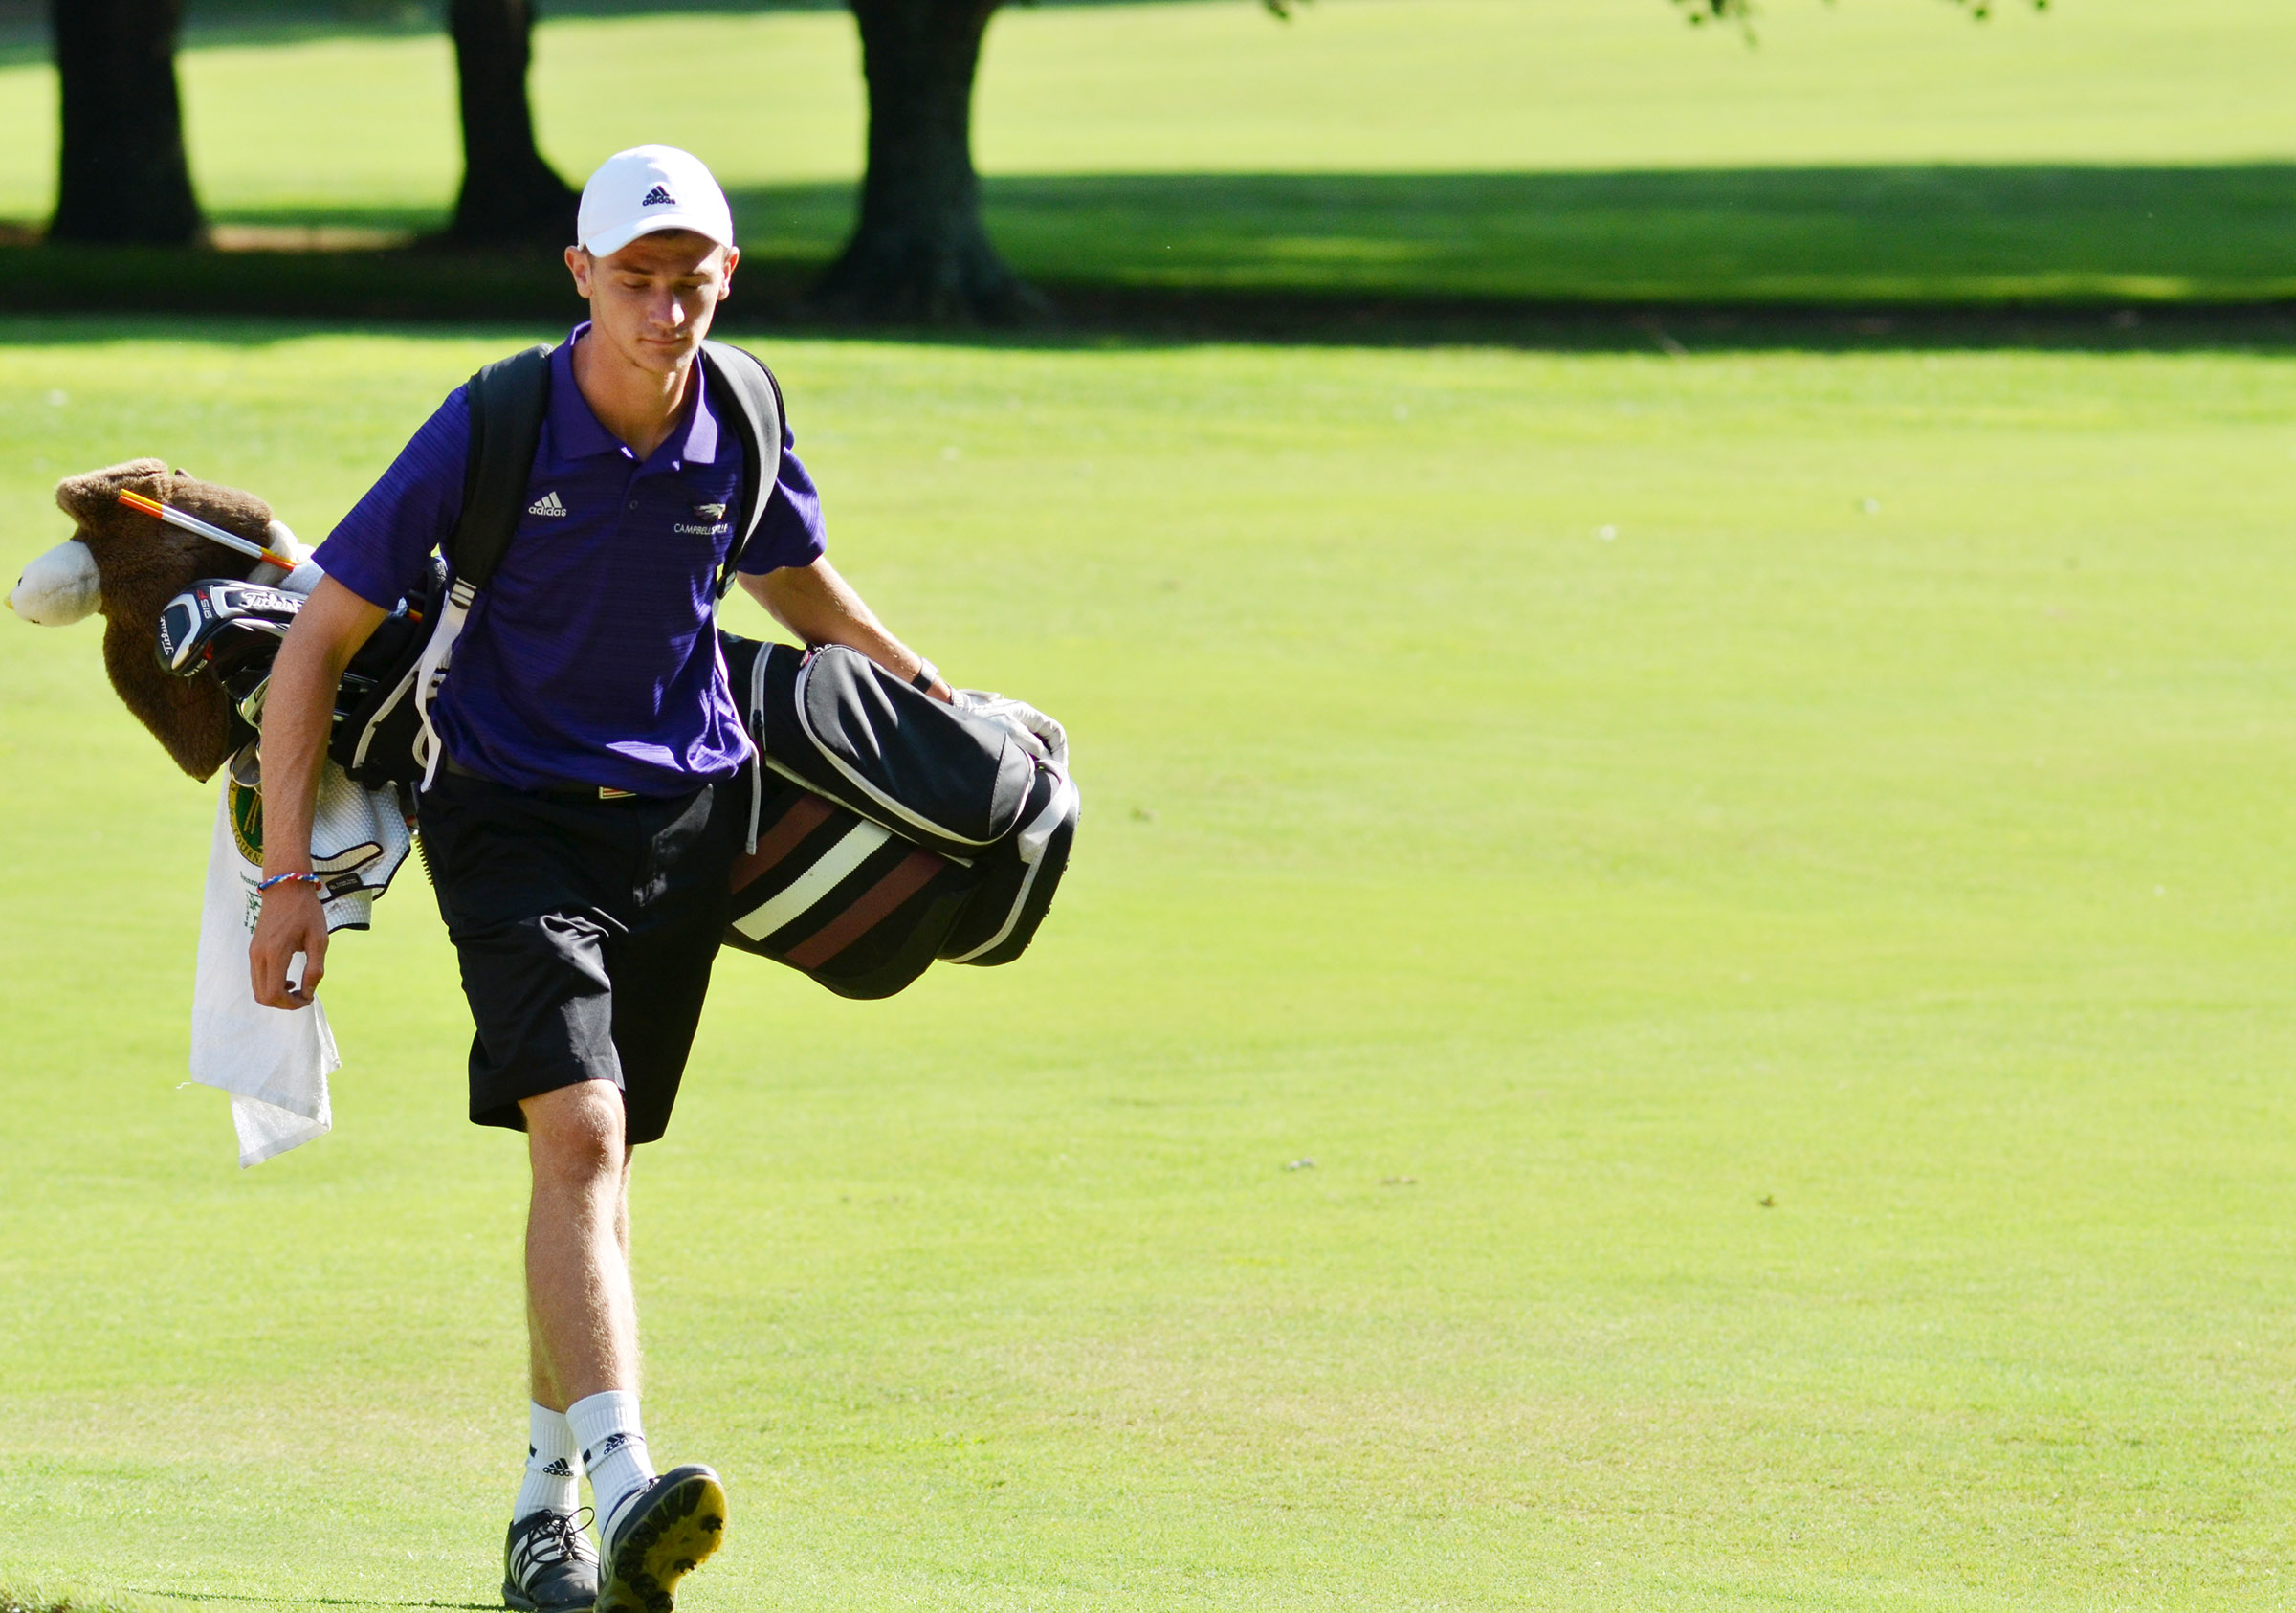 CHS senior Connor Wilson walks to the putting green.